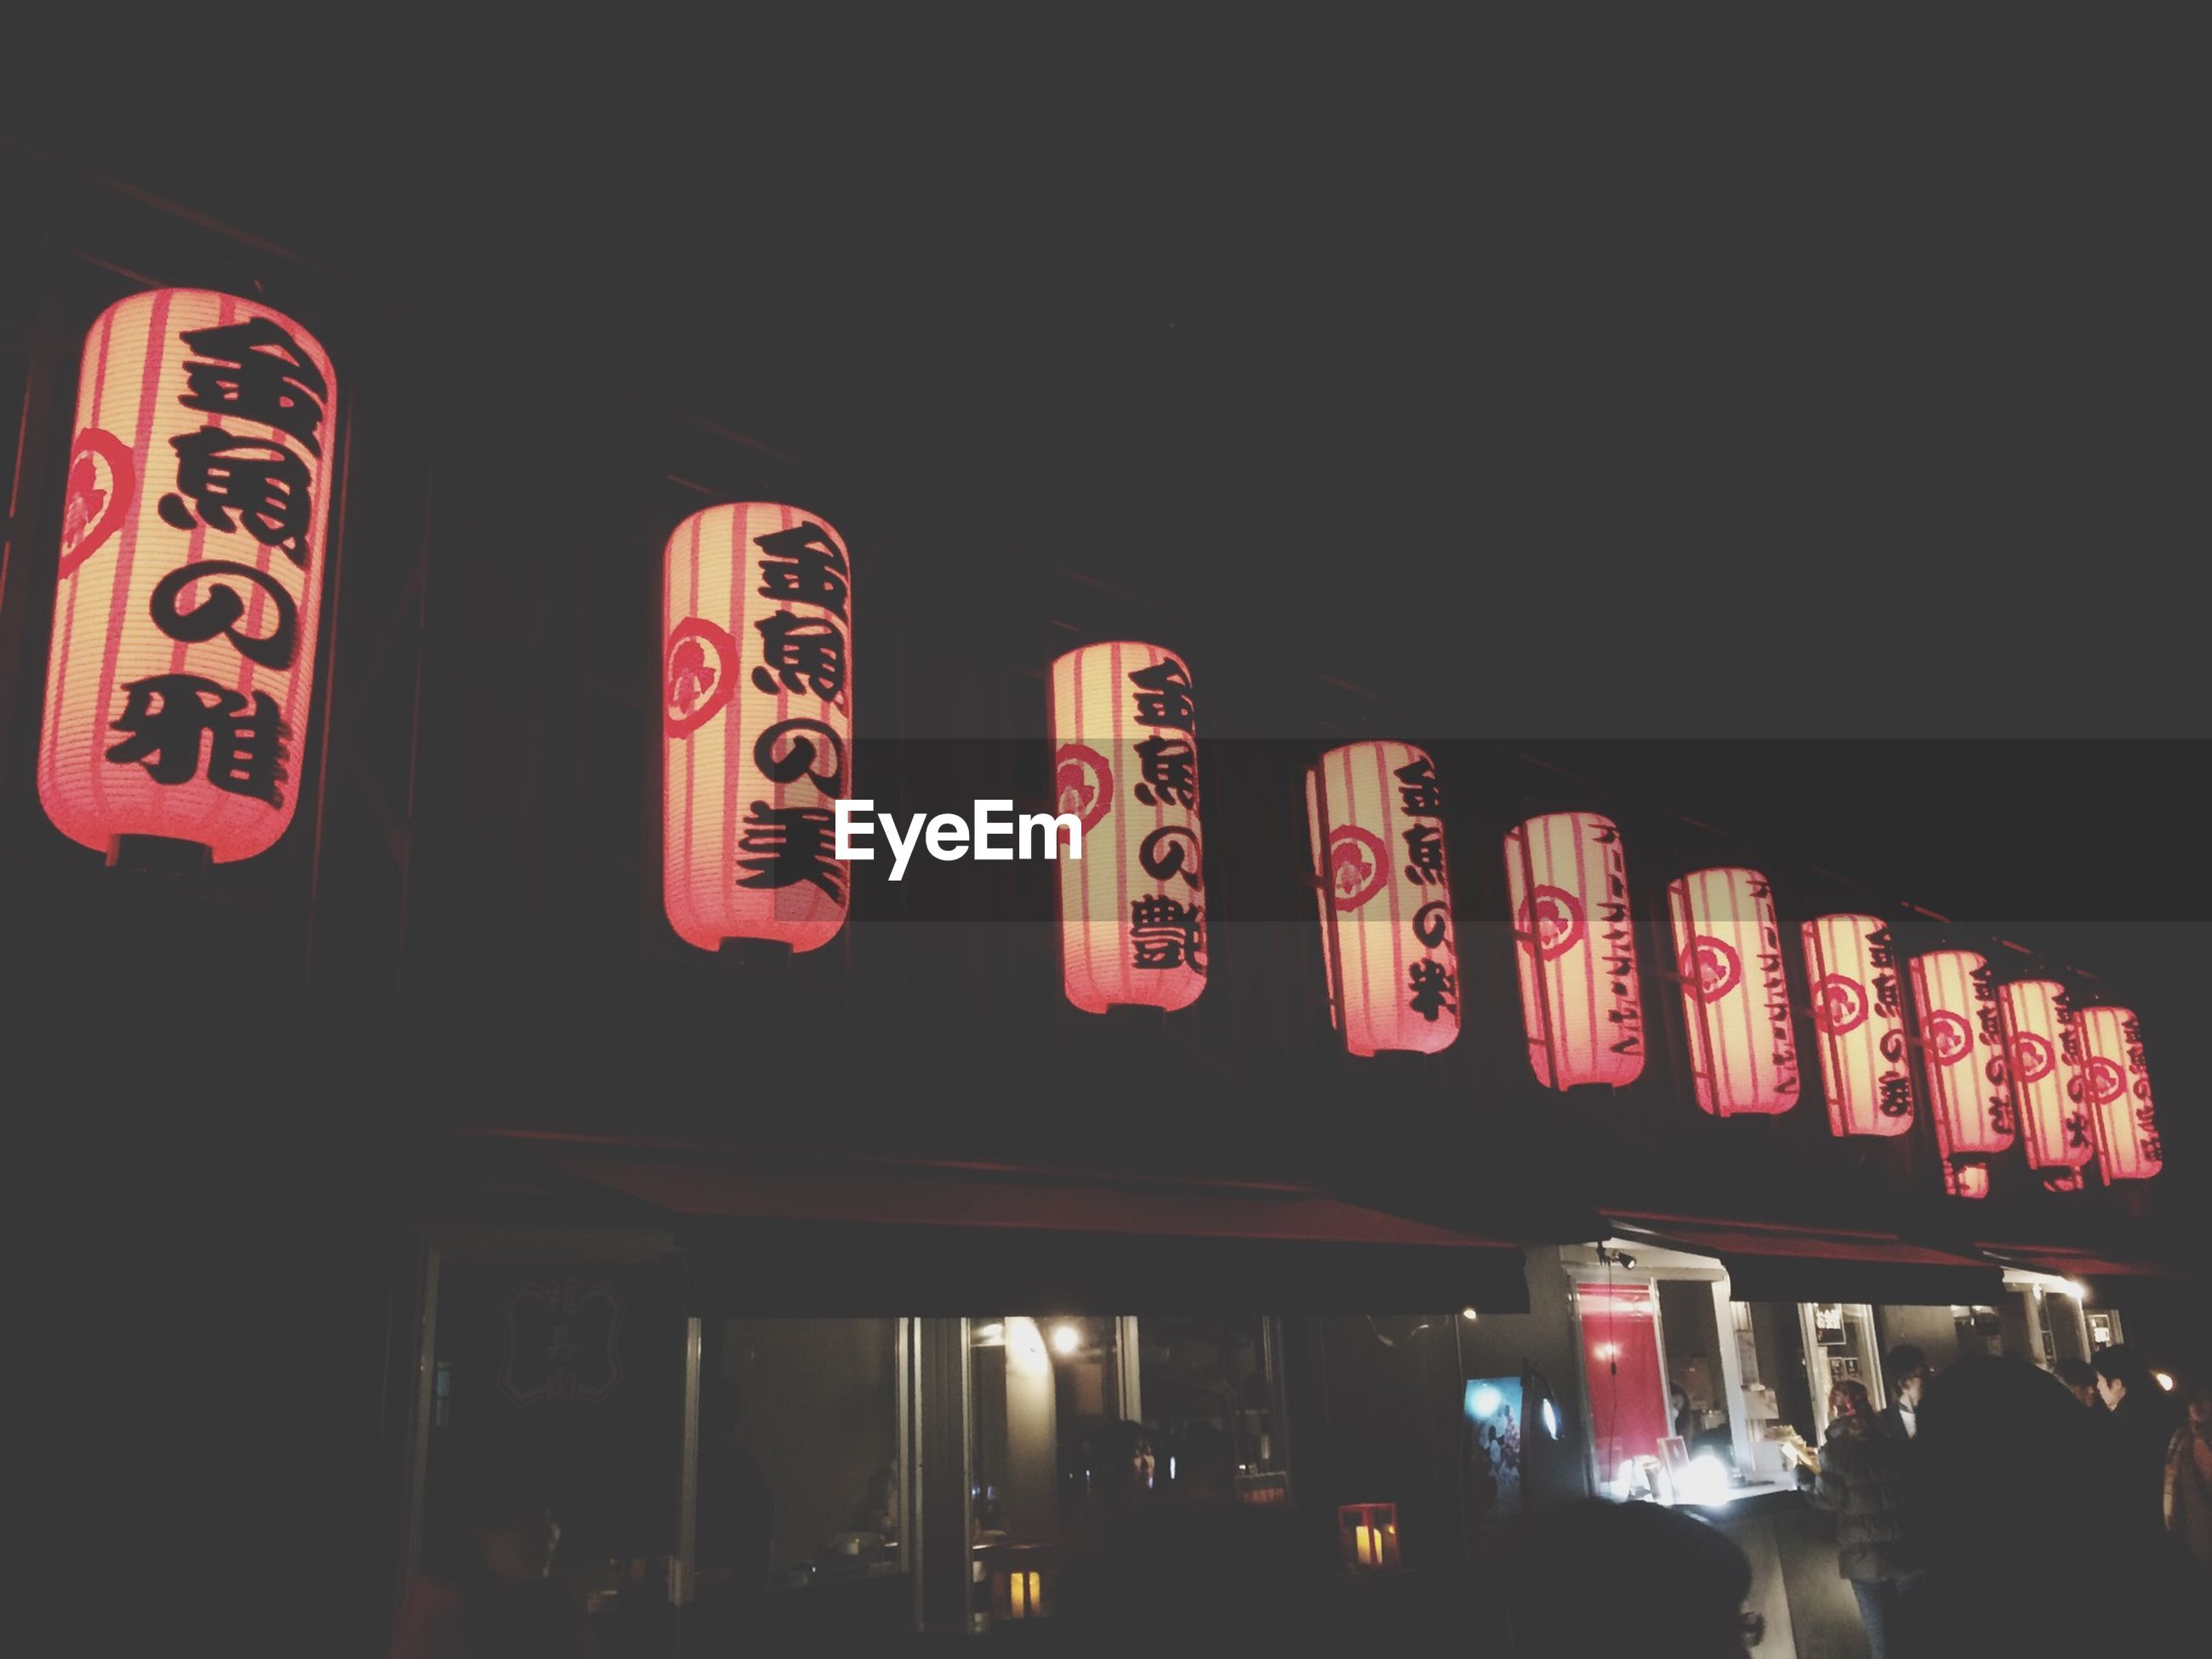 text, western script, illuminated, night, communication, non-western script, built structure, architecture, low angle view, in a row, store, red, indoors, information, building exterior, information sign, advertisement, capital letter, incidental people, sign